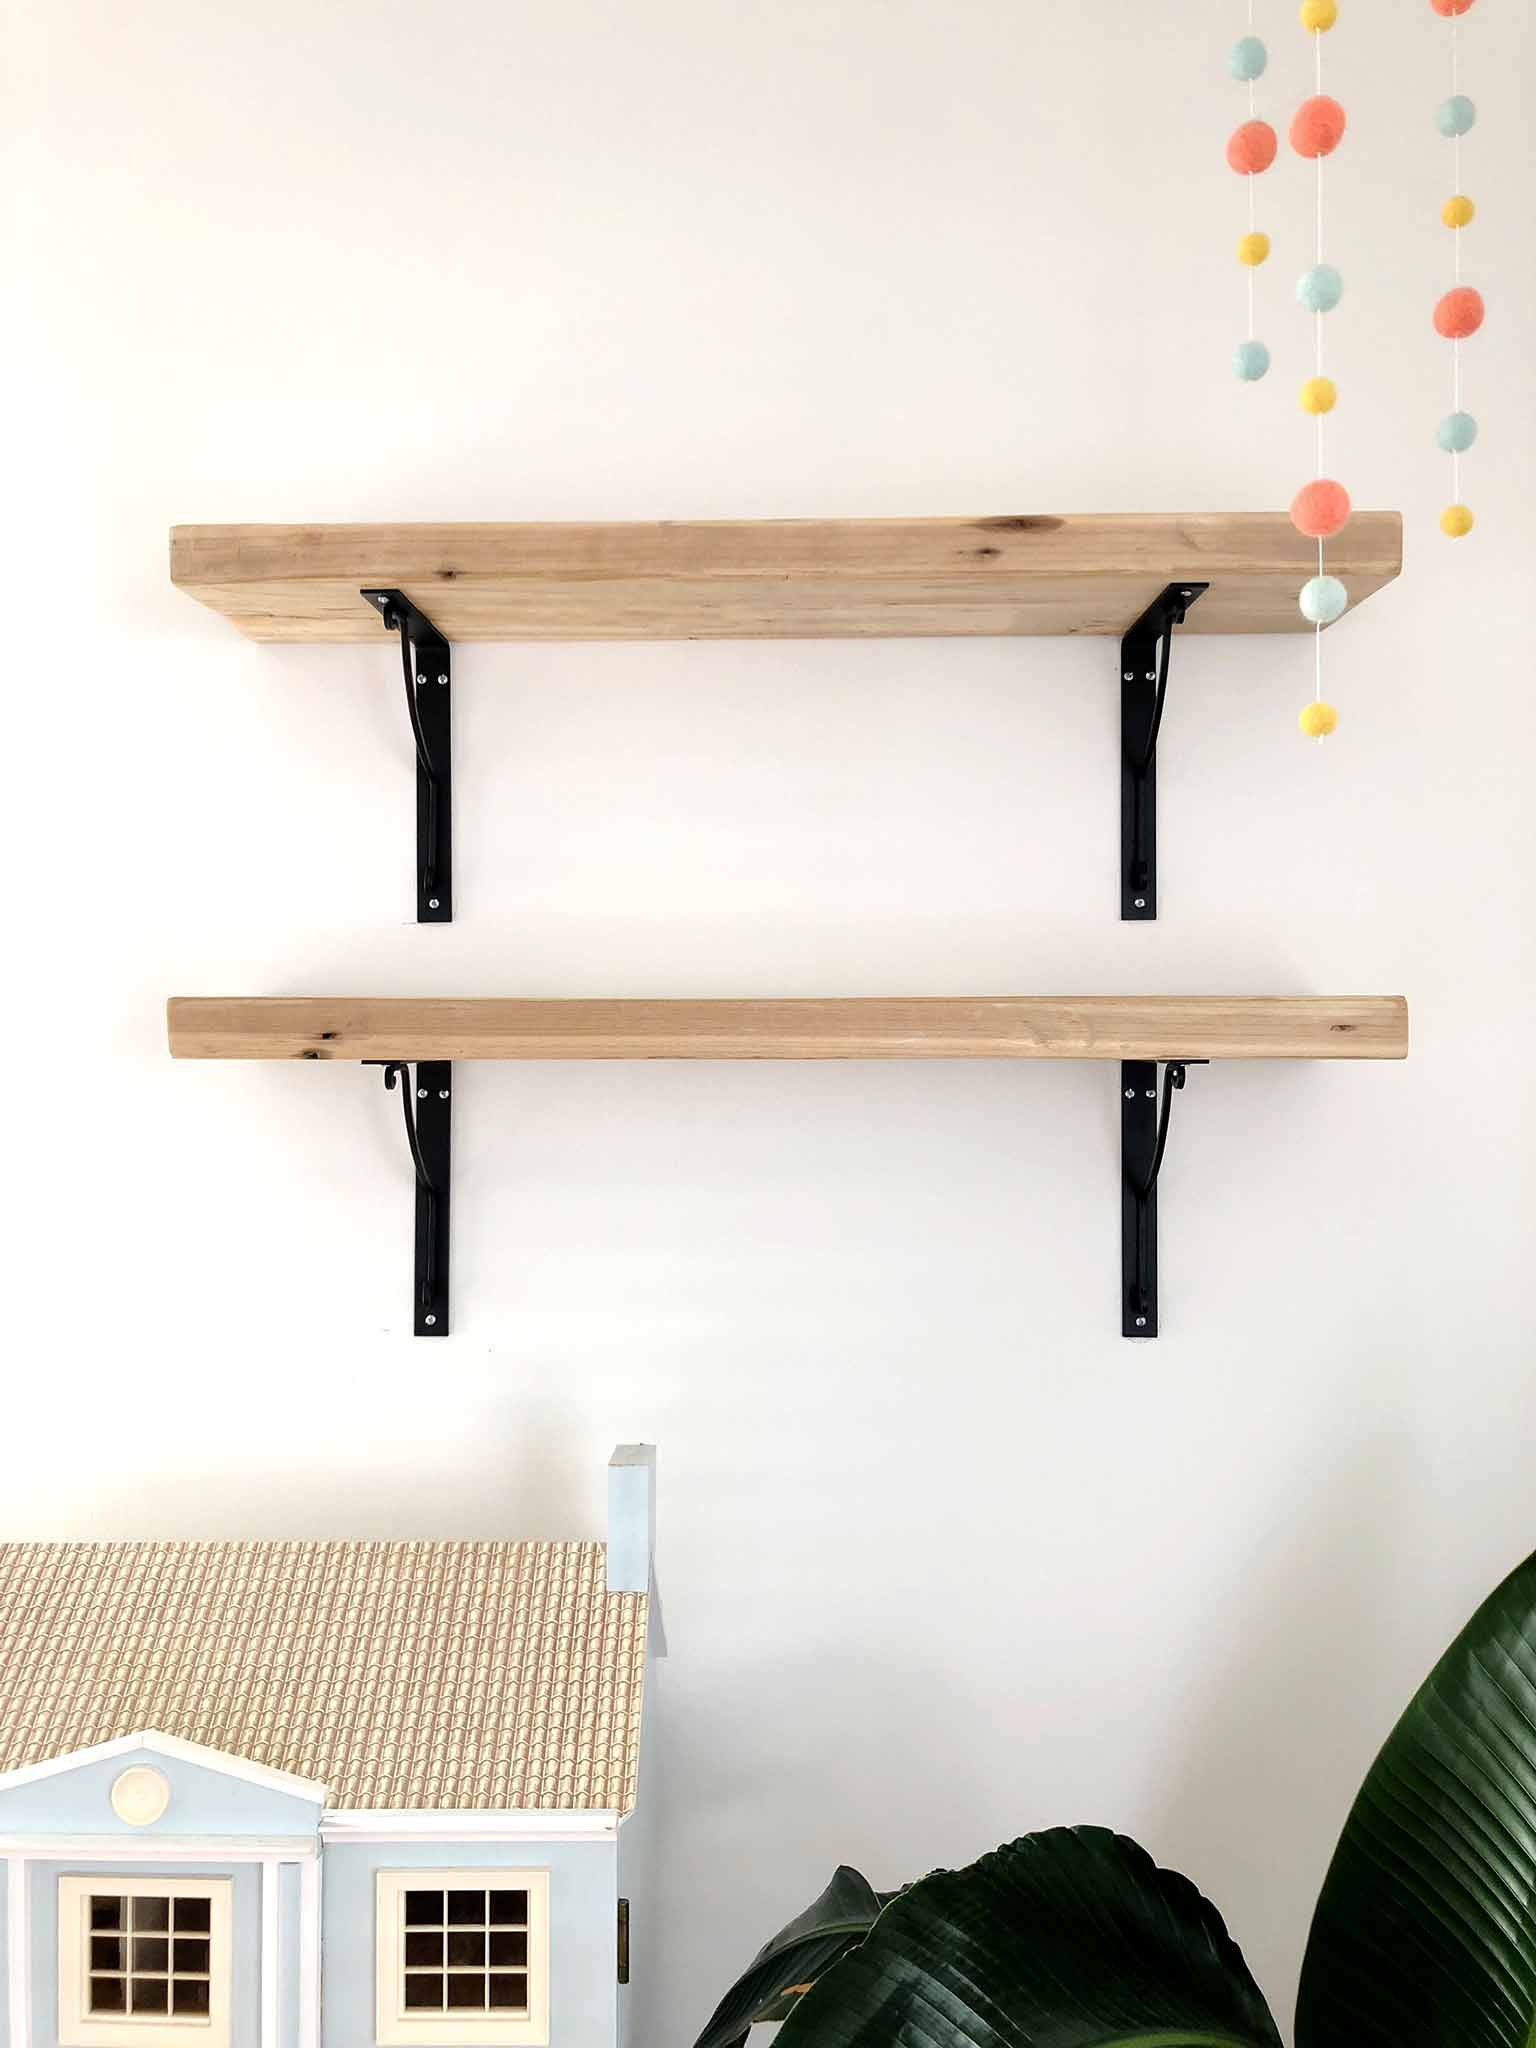 Making wall shelves out of reclaimed wood - Guest Participant of the One Room Challenge - That Homebird Life Blog